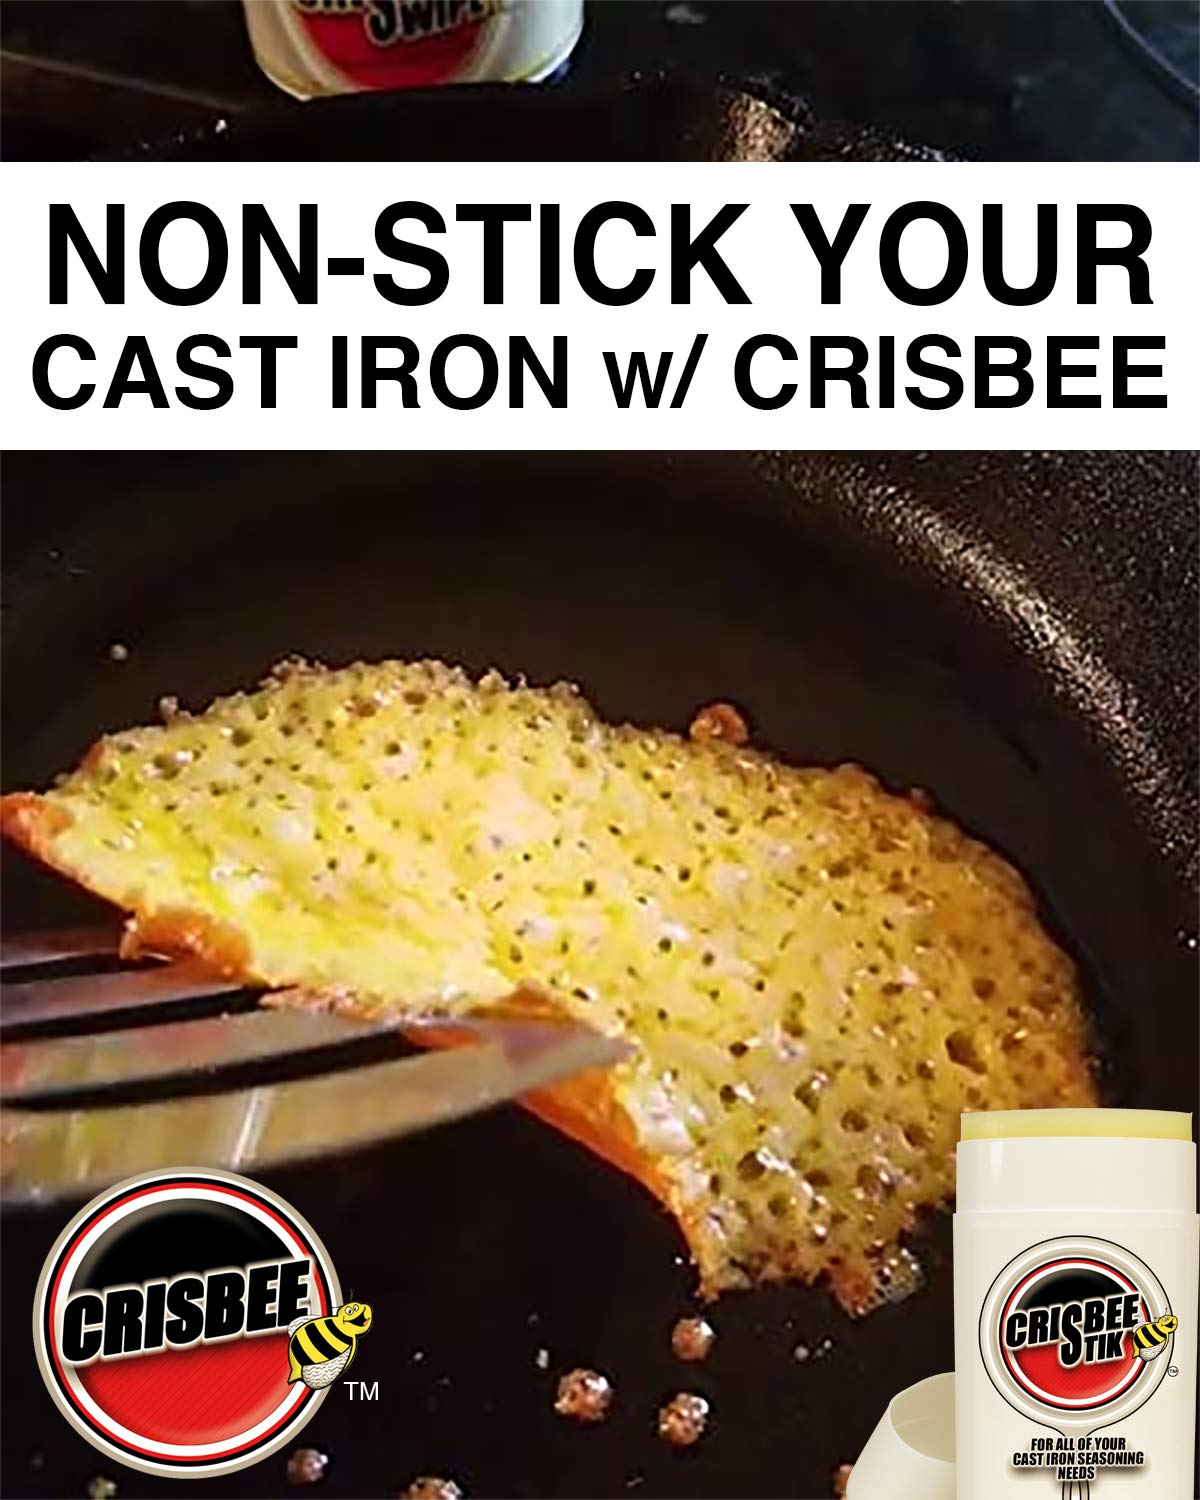 Crisbee Puck Cast Iron Seasoning - Family Made in USA - The Cast Iron Seasoning Oil & Conditioner Preferred by the Experts - Maintain a Cleaner Non-Stick Skillet by Crisbee (Image #5)